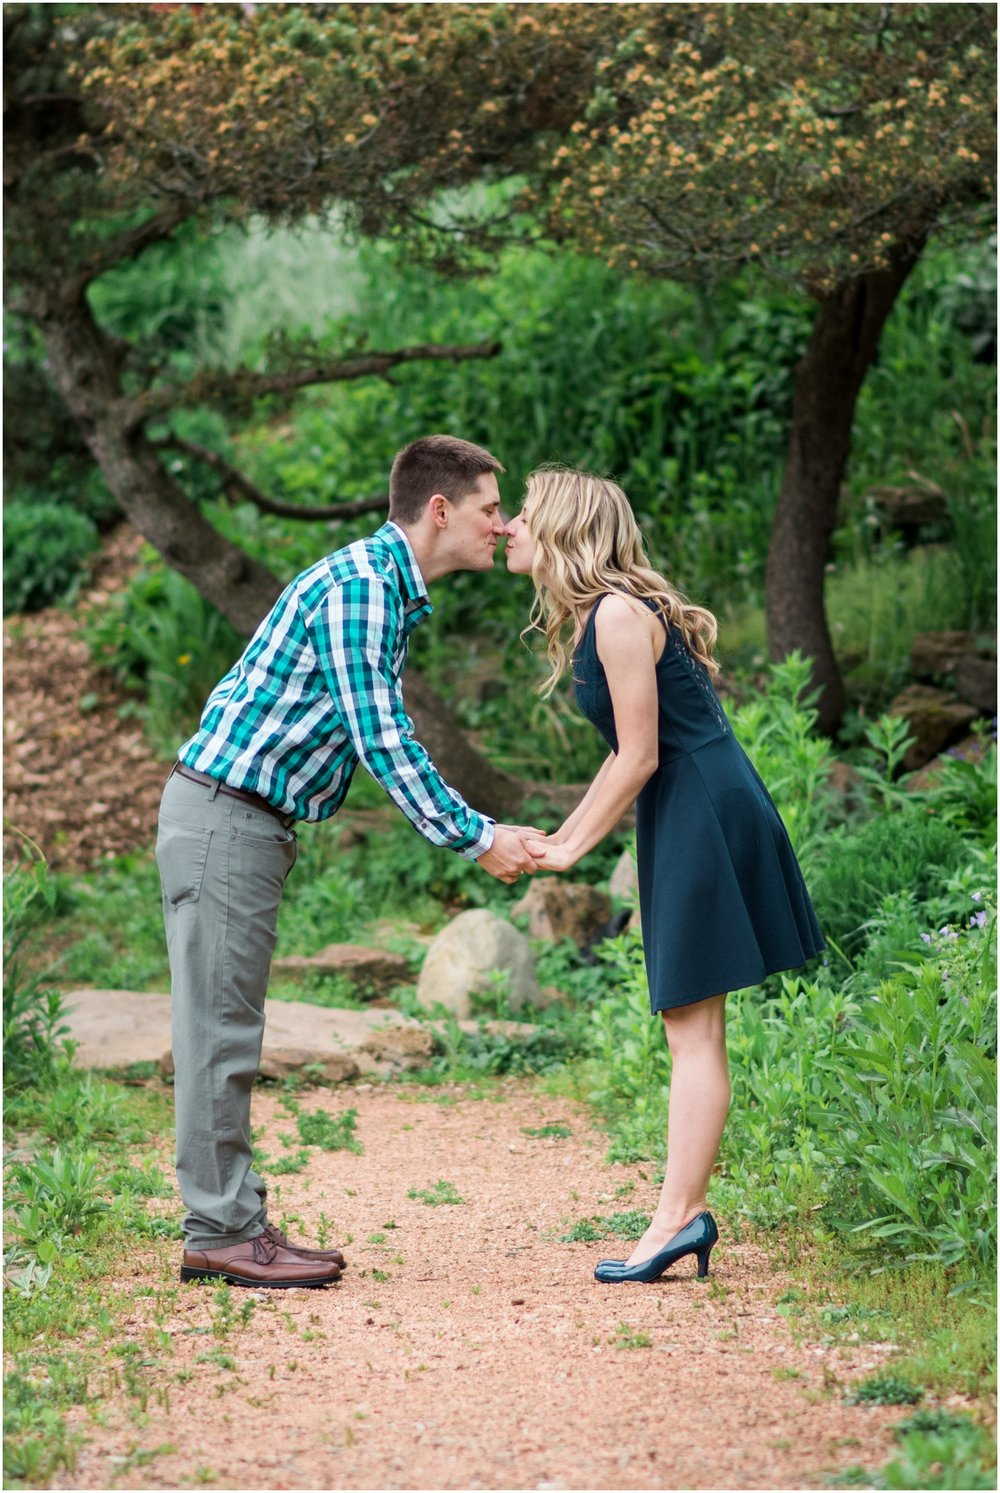 Paquette_Park_Portage_WI_Engagement_Photos_Heather_and_Derek_0027.jpg